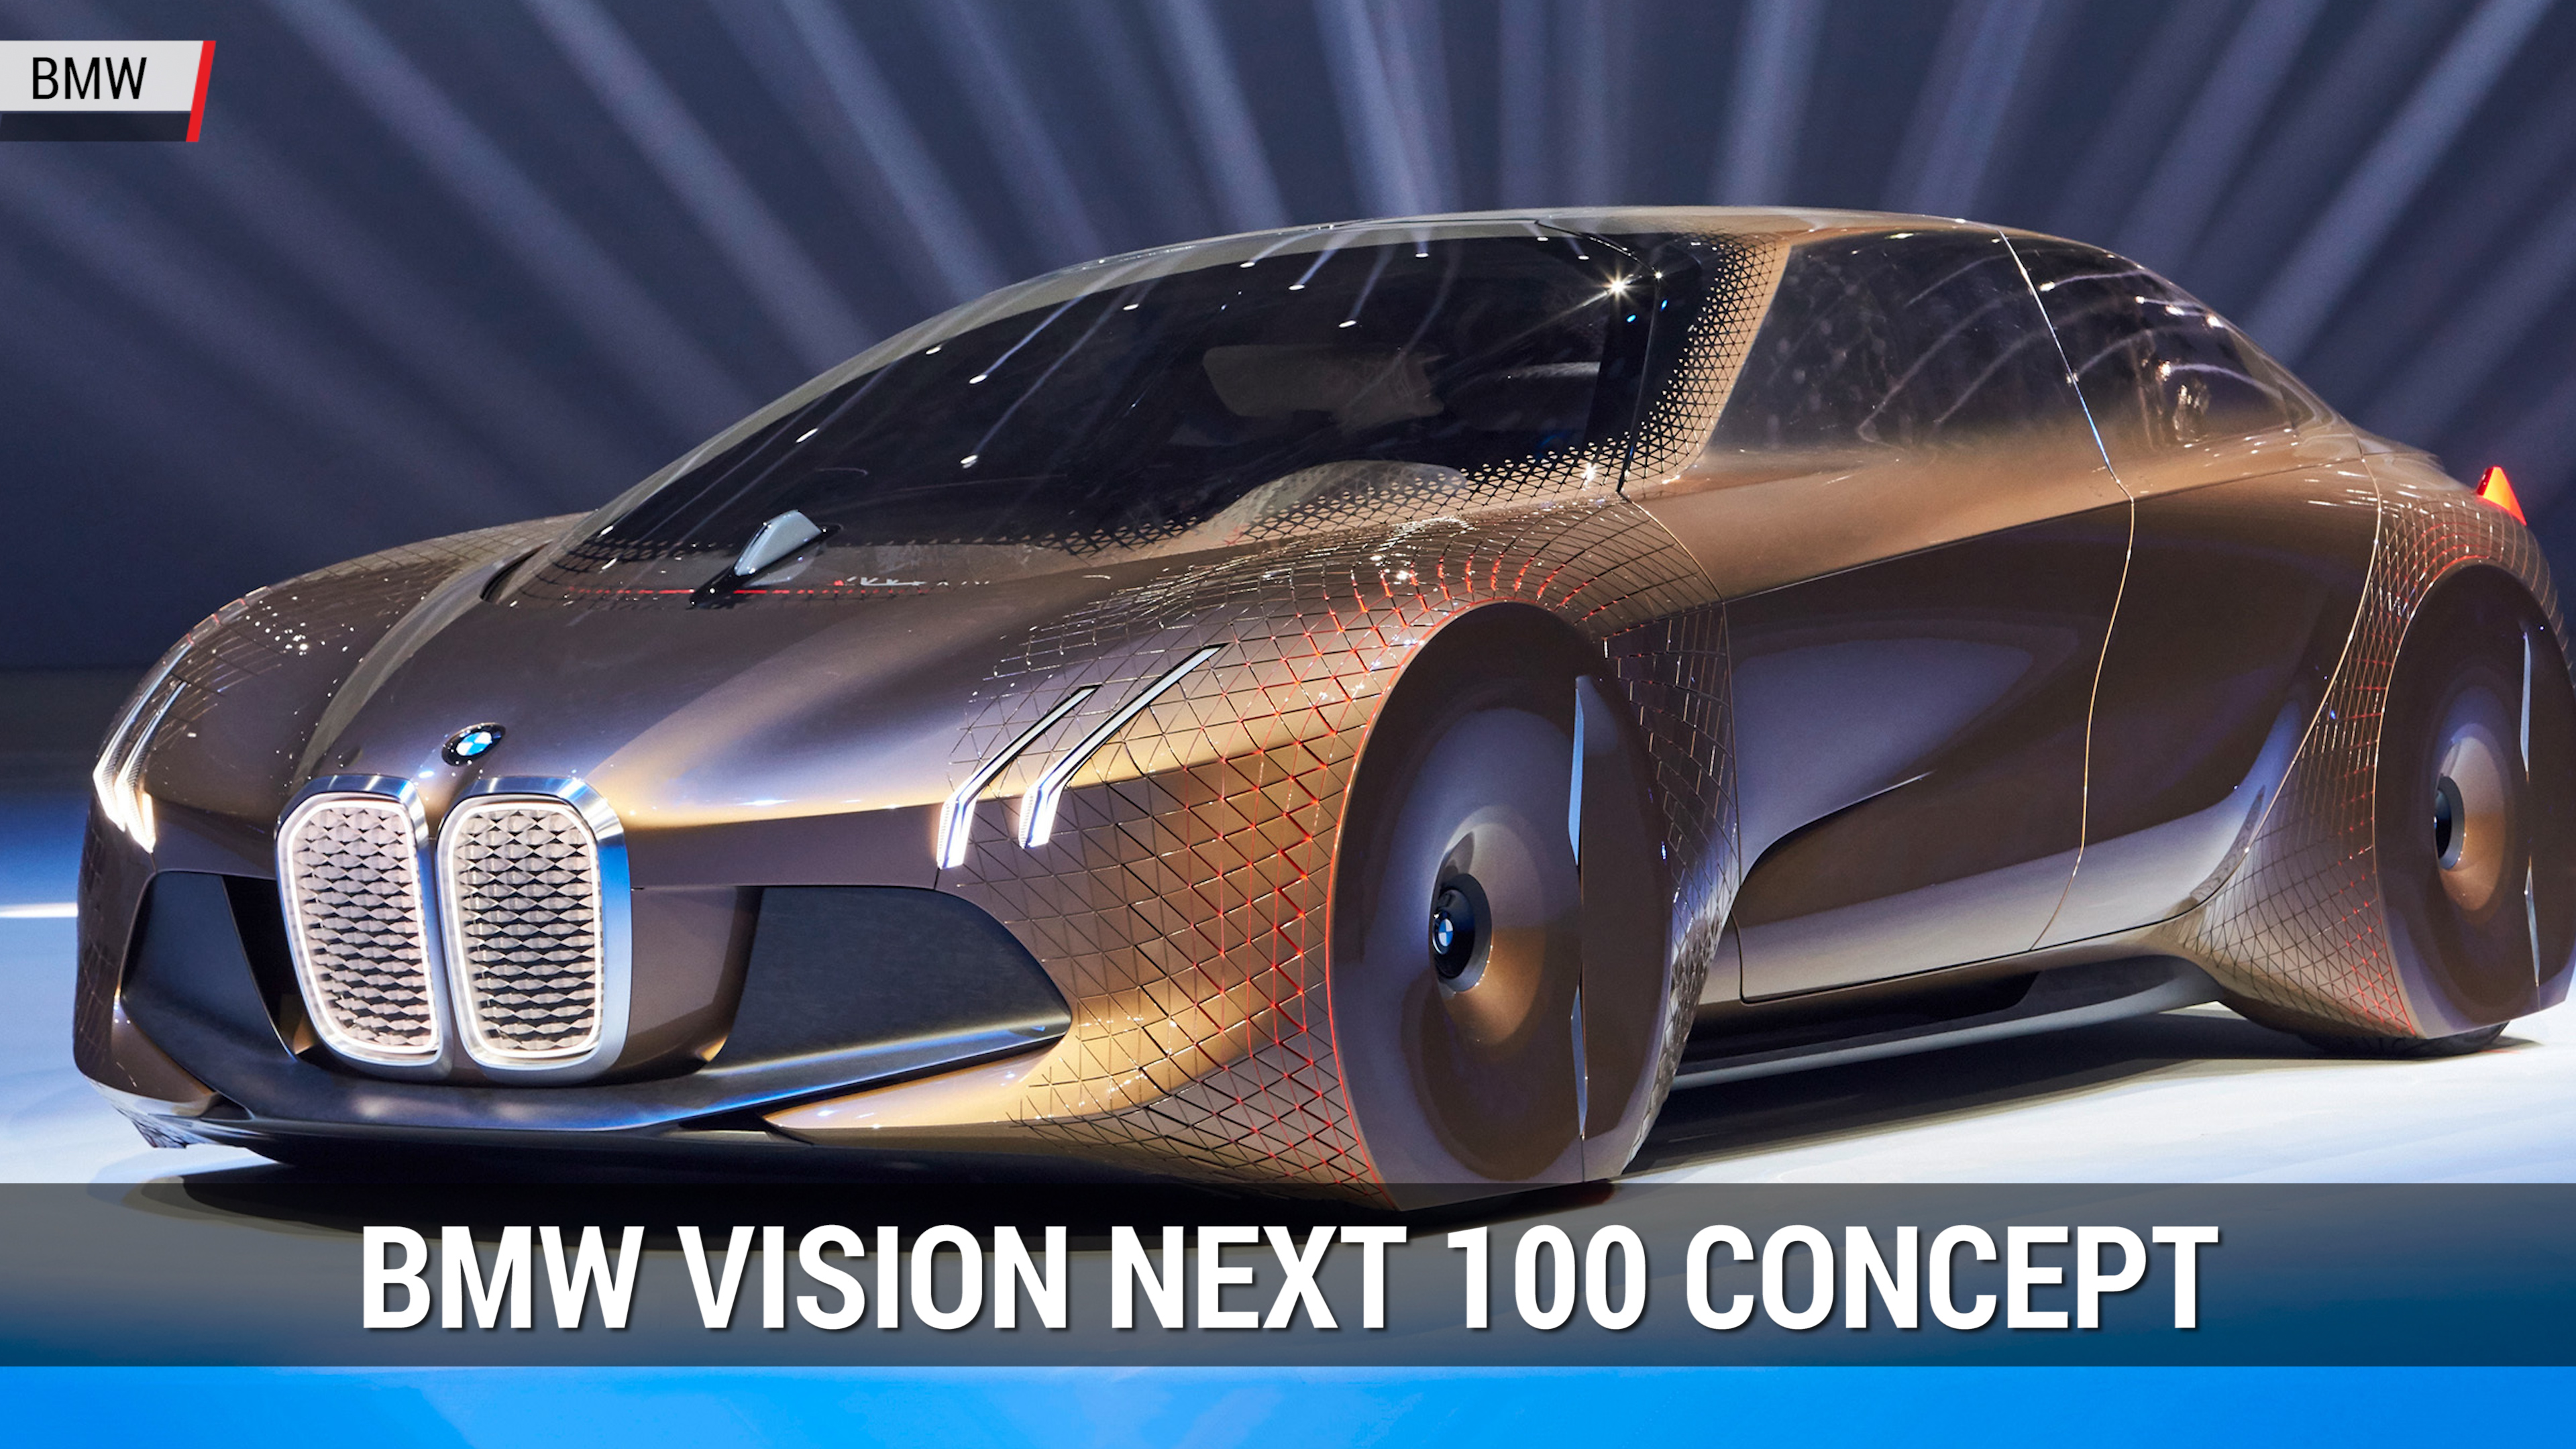 BMW Looks Toward Future with Vision Next 100 Concept | Autoblog Minute